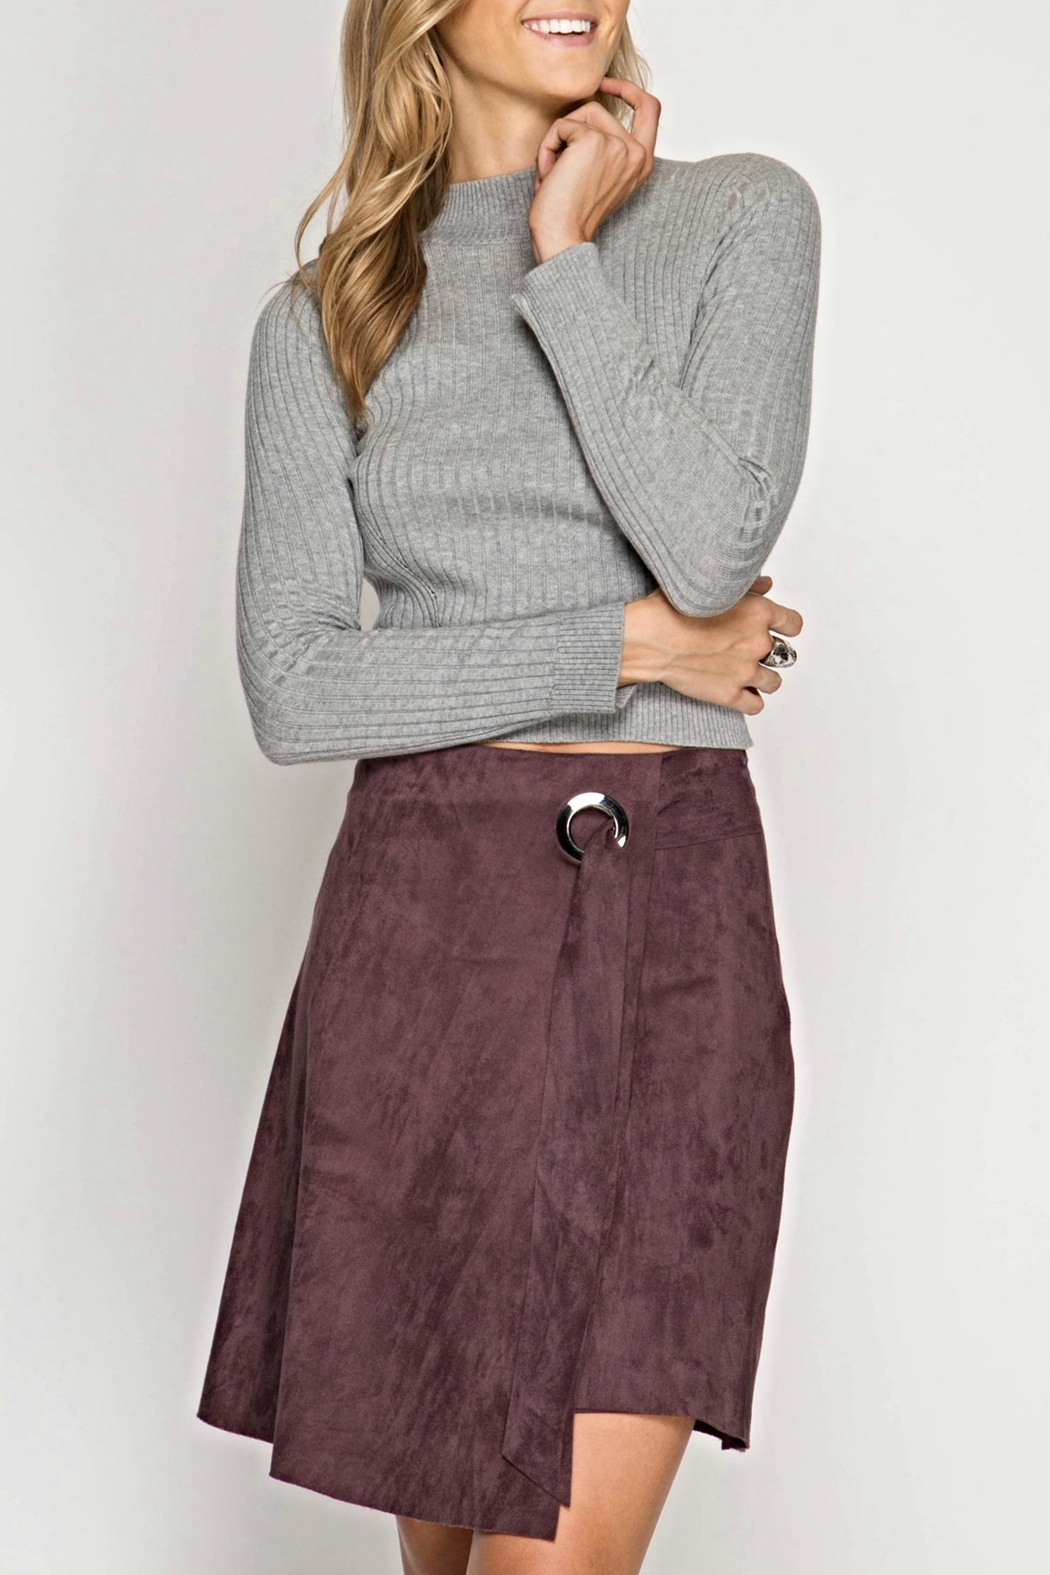 She + Sky Crooked Suede Skirt - Main Image